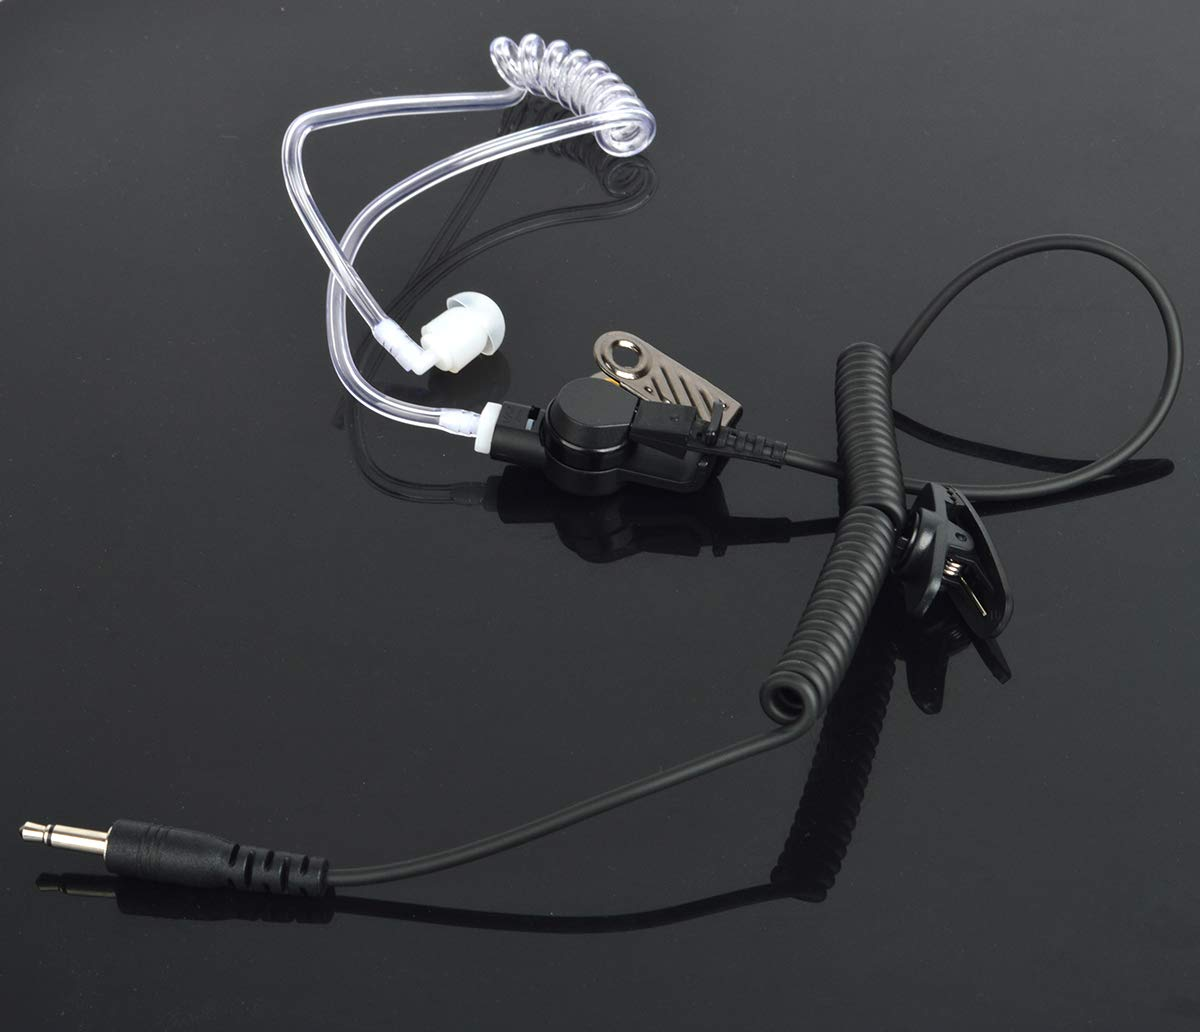 Receiver//Listen Only 2.5mm Surveillance Headset Earpiece with Clear Acoustic Coil Tube and One Pair Medium Earmolds One Mushroom Earbud Ear Tip for Icom Yaesu Ham Radio